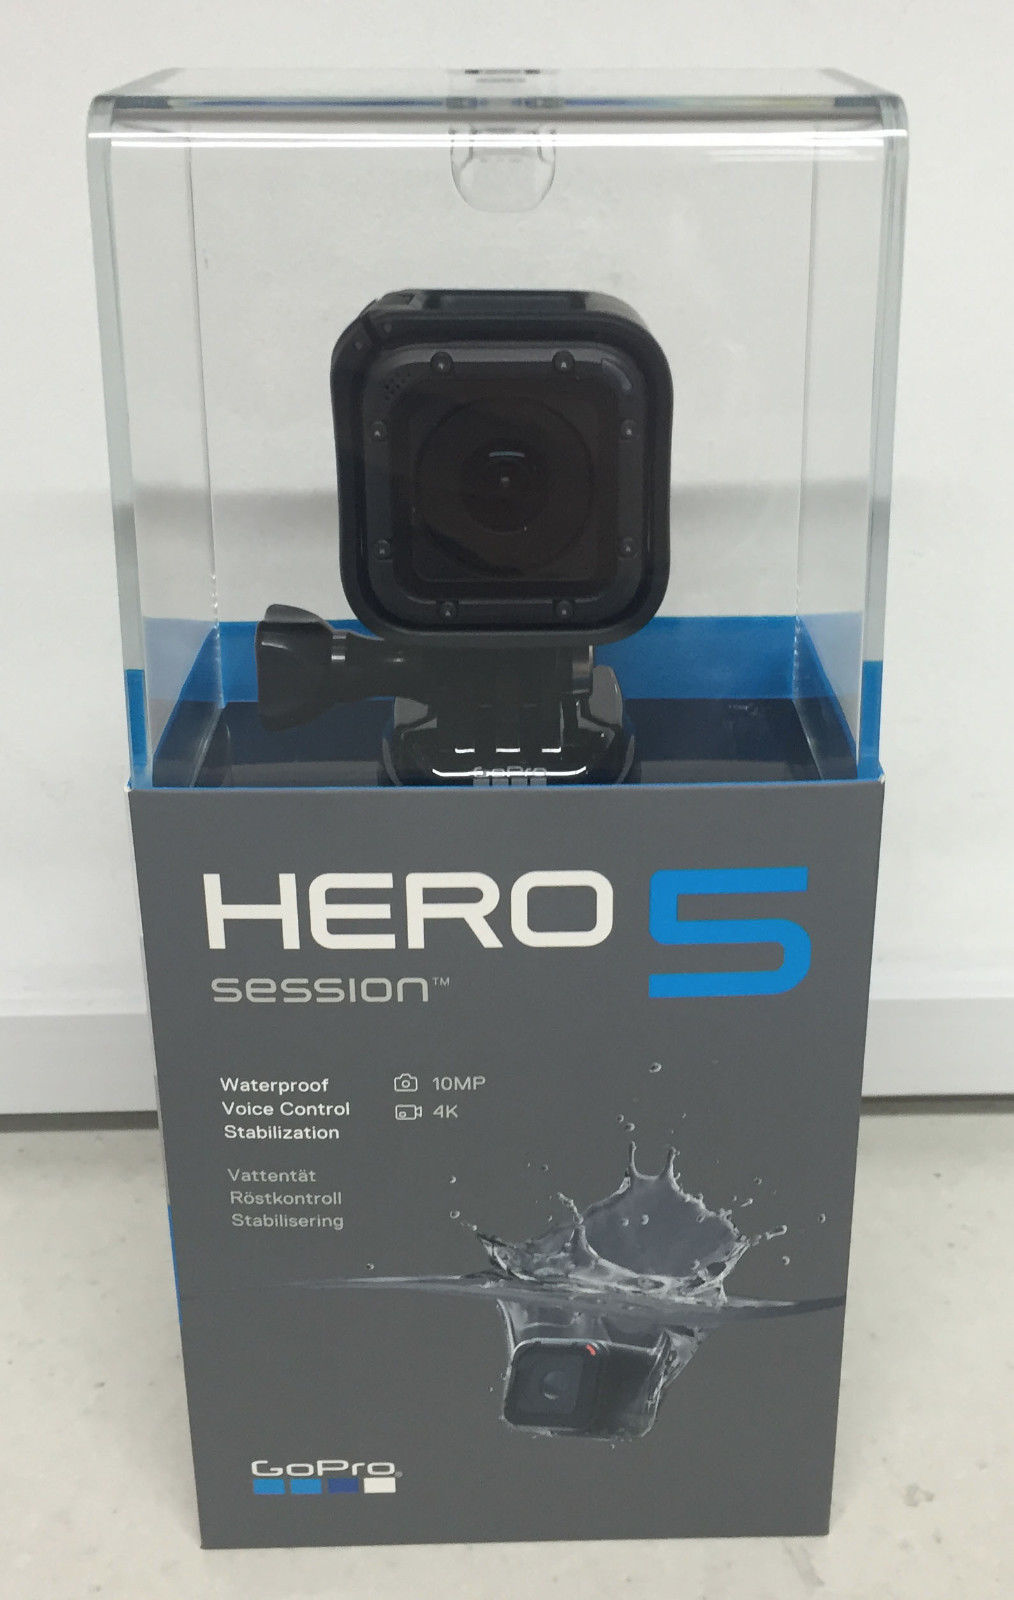 GoPro Hero5 Session Model 4K Extraordinarily HD, Wi-Fi Water-proof High-def digicam + 32GB SD Card